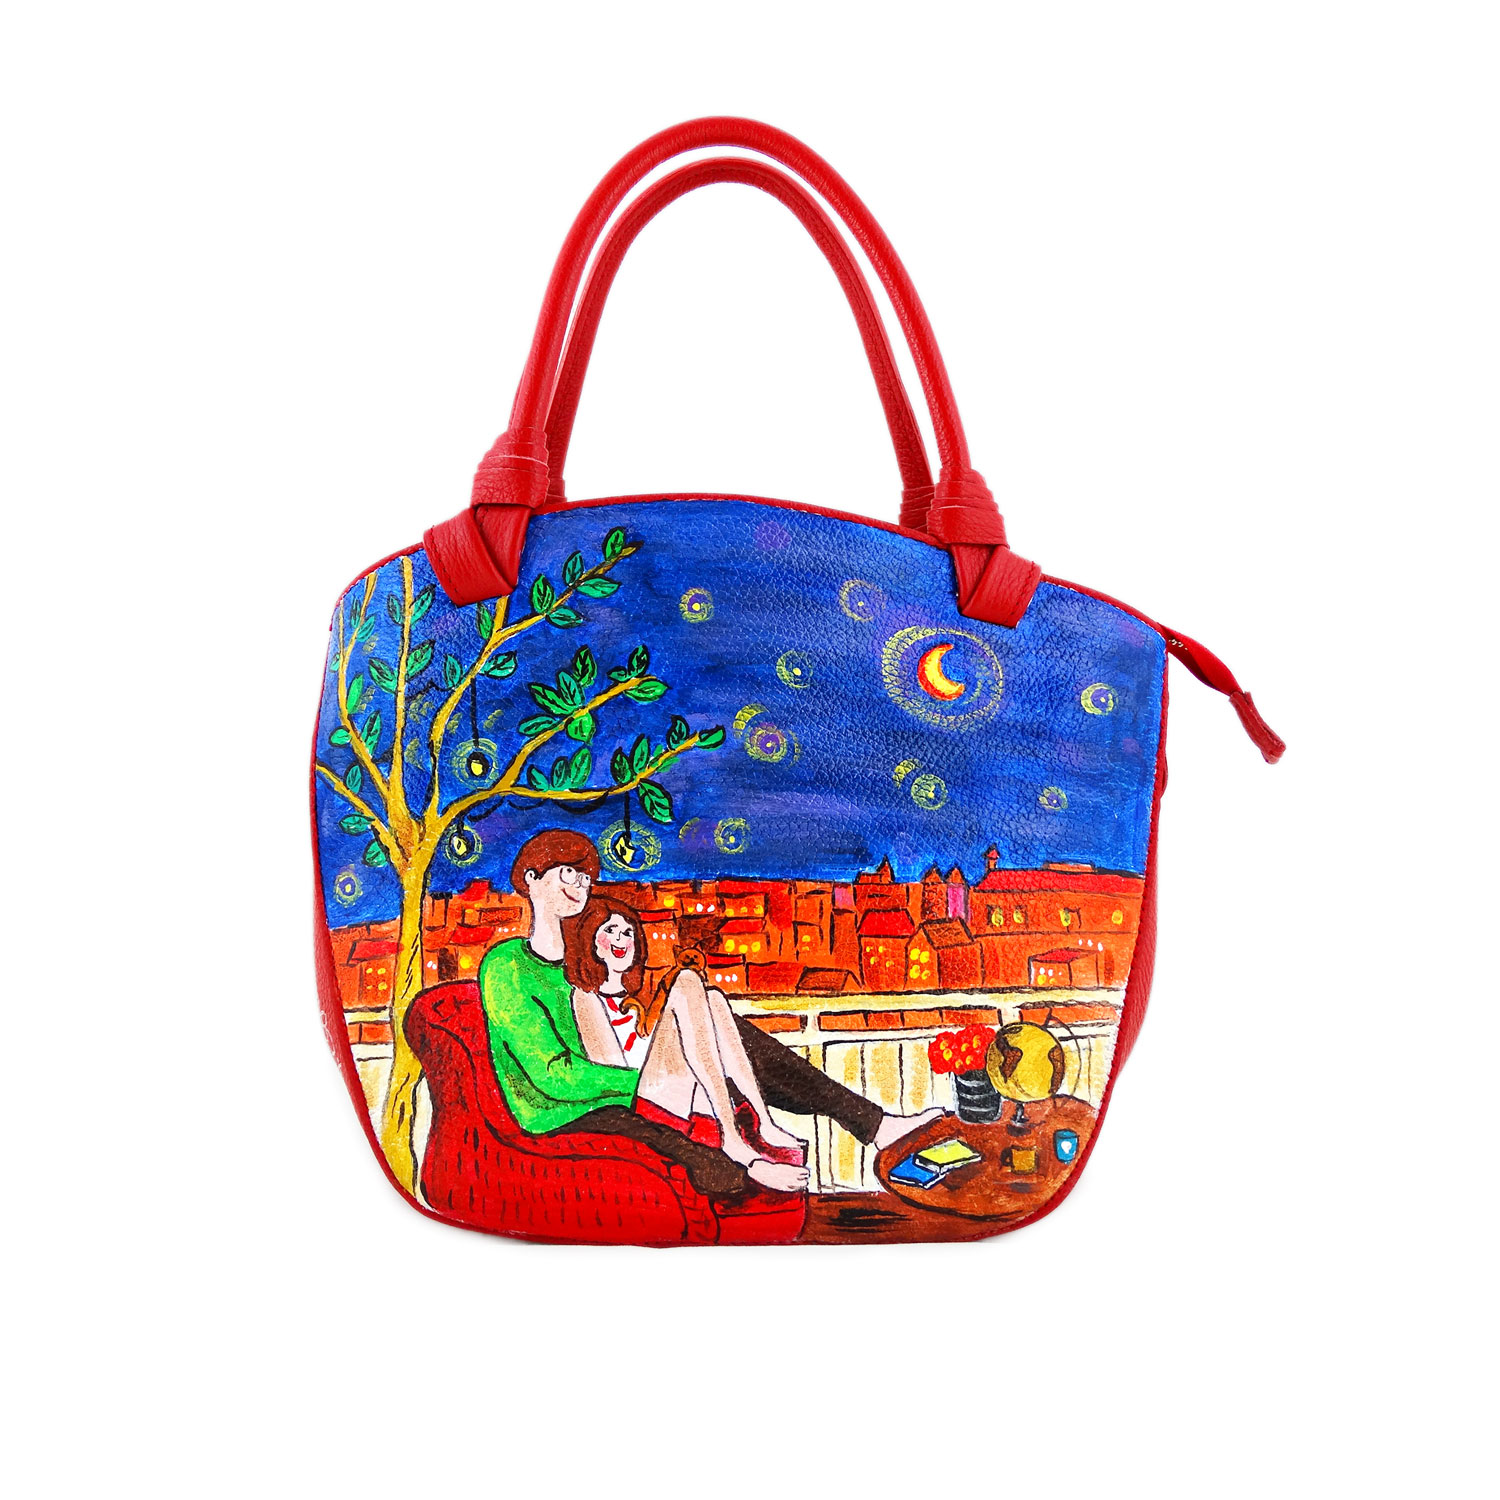 Hand painted bag - Tribute to the lovers by Puuung